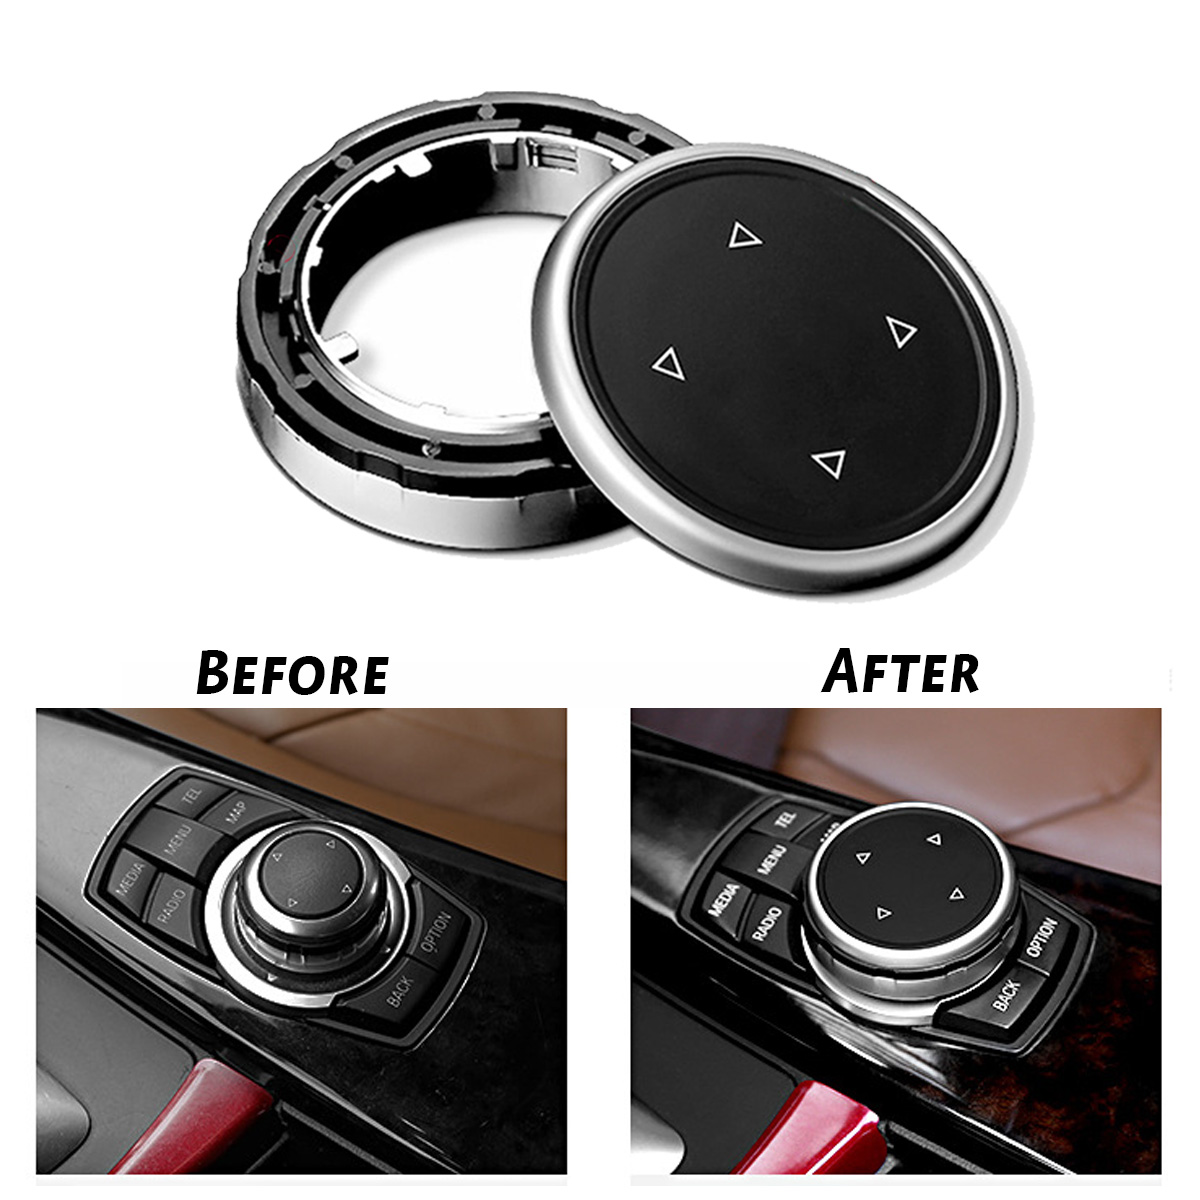 For iDrive Car Multimedia Button Cover Trim Knob <font><b>Sticker</b></font> for <font><b>BMW</b></font> F10 <font><b>F20</b></font> F30 3 5 Series for NBT Controller Translucent Button image